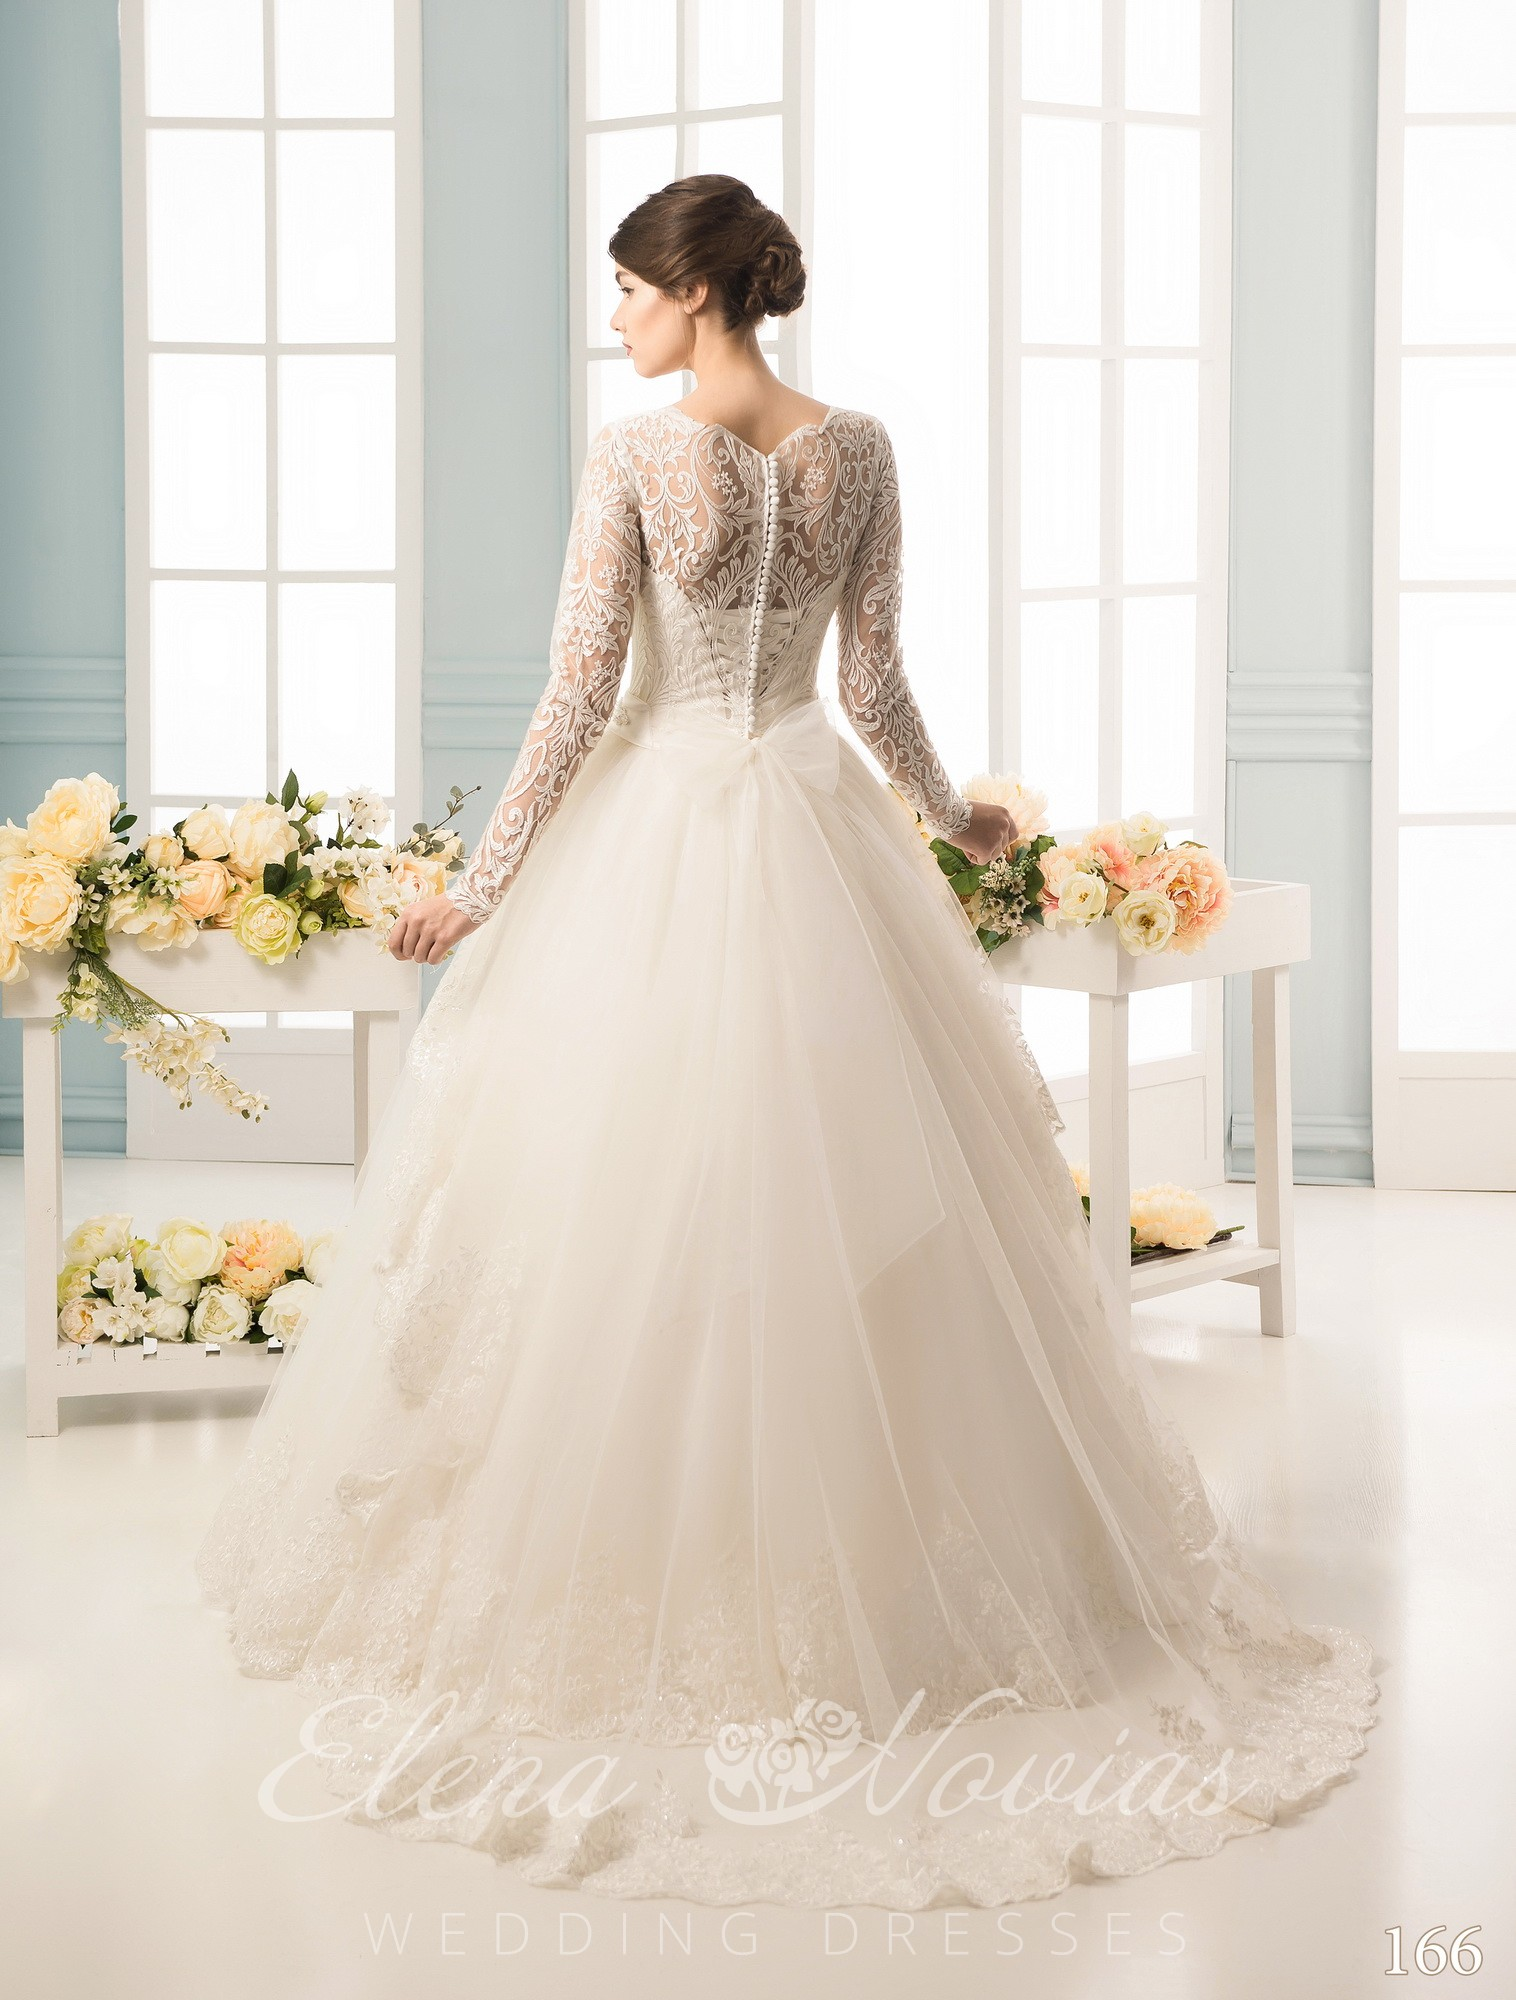 Wedding dress wholesale 166